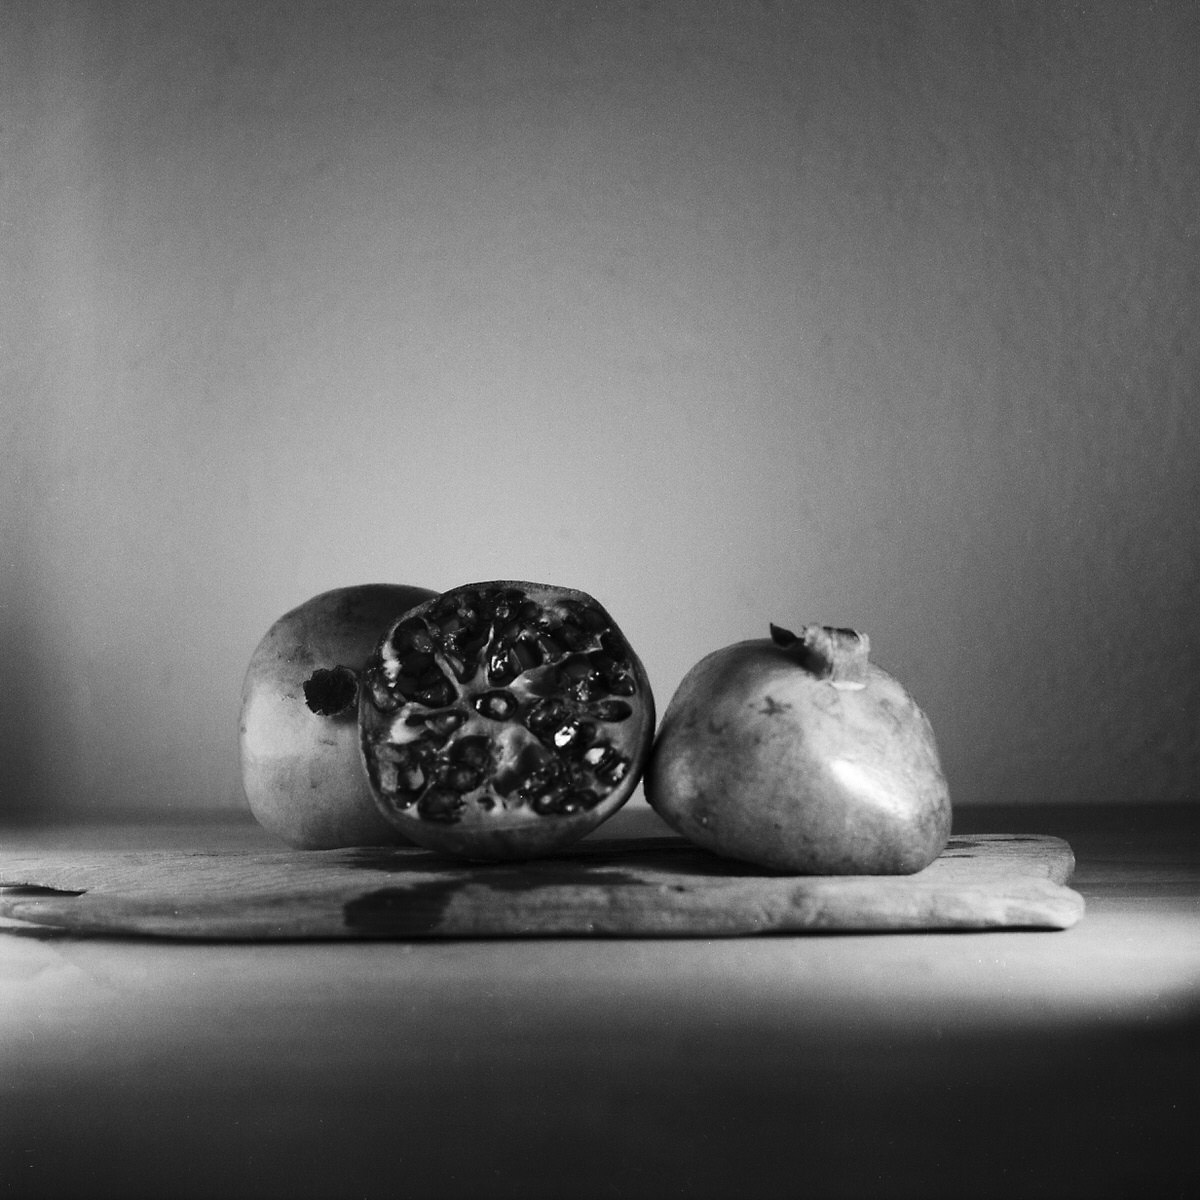 Pomegranate – Still Life Photography - Yashica MAT-124 with Fomapan 200 Creative